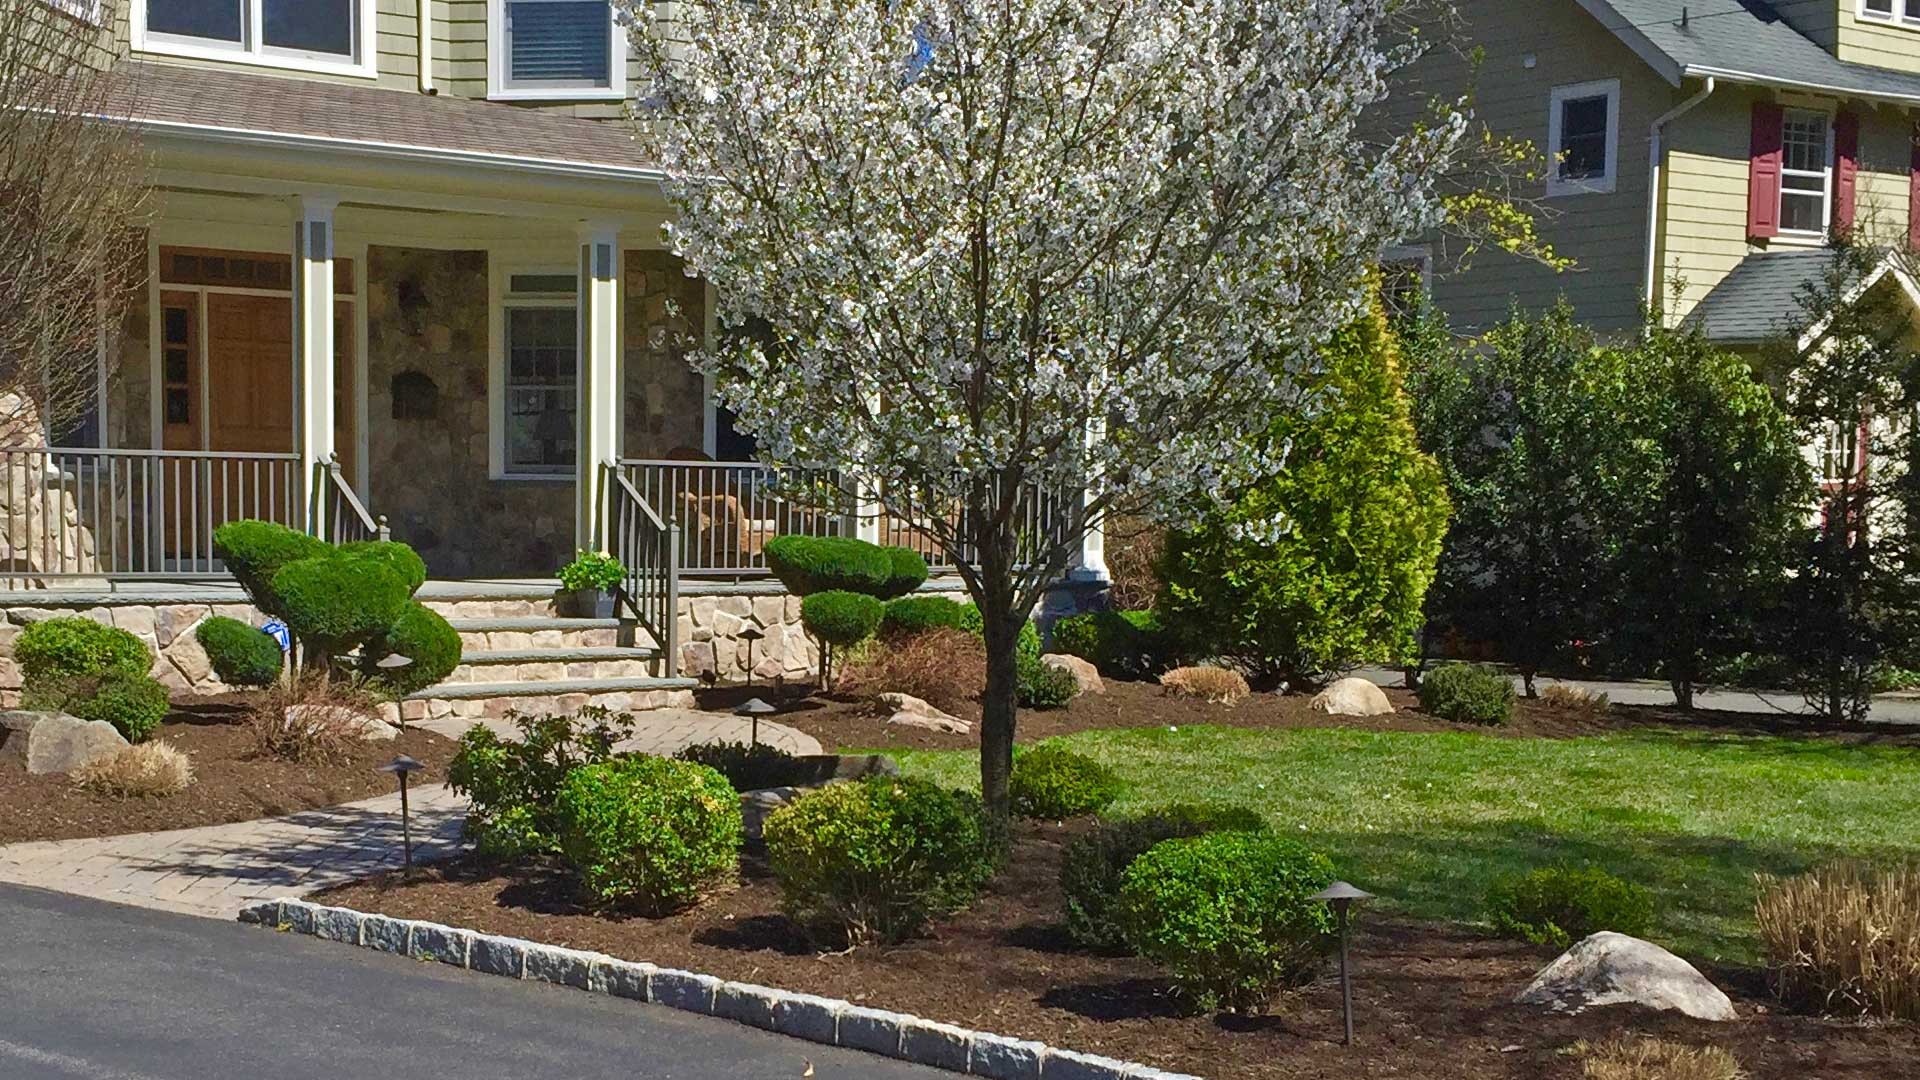 Lawn and landscaping in Scotch Plains, NJ.